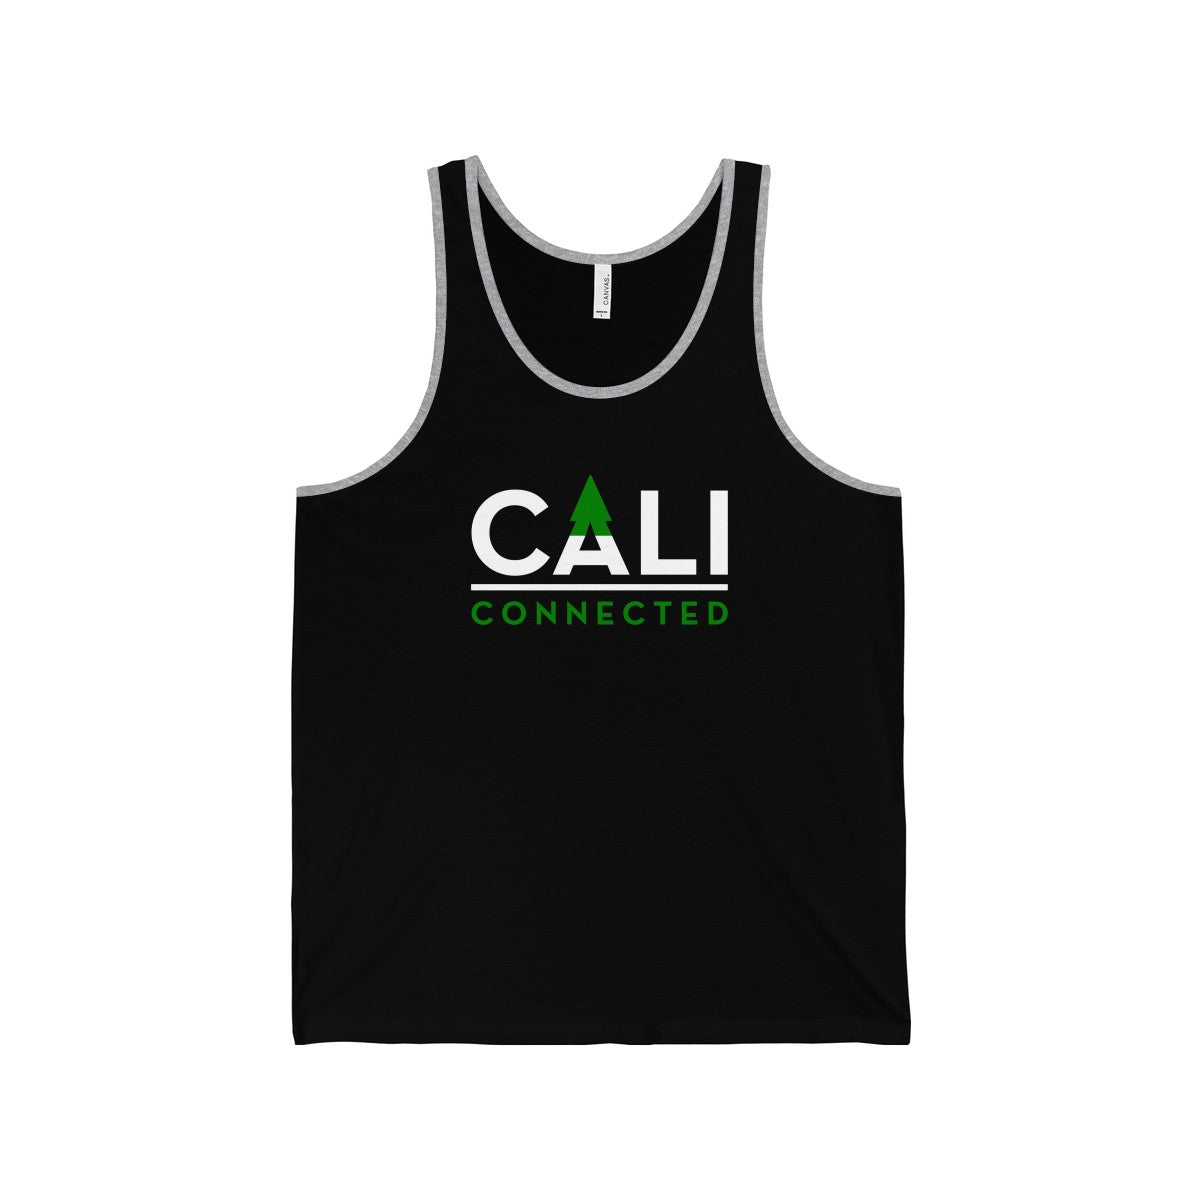 CaliConnected Online Smoke Shop - CaliConnected Men's Tank